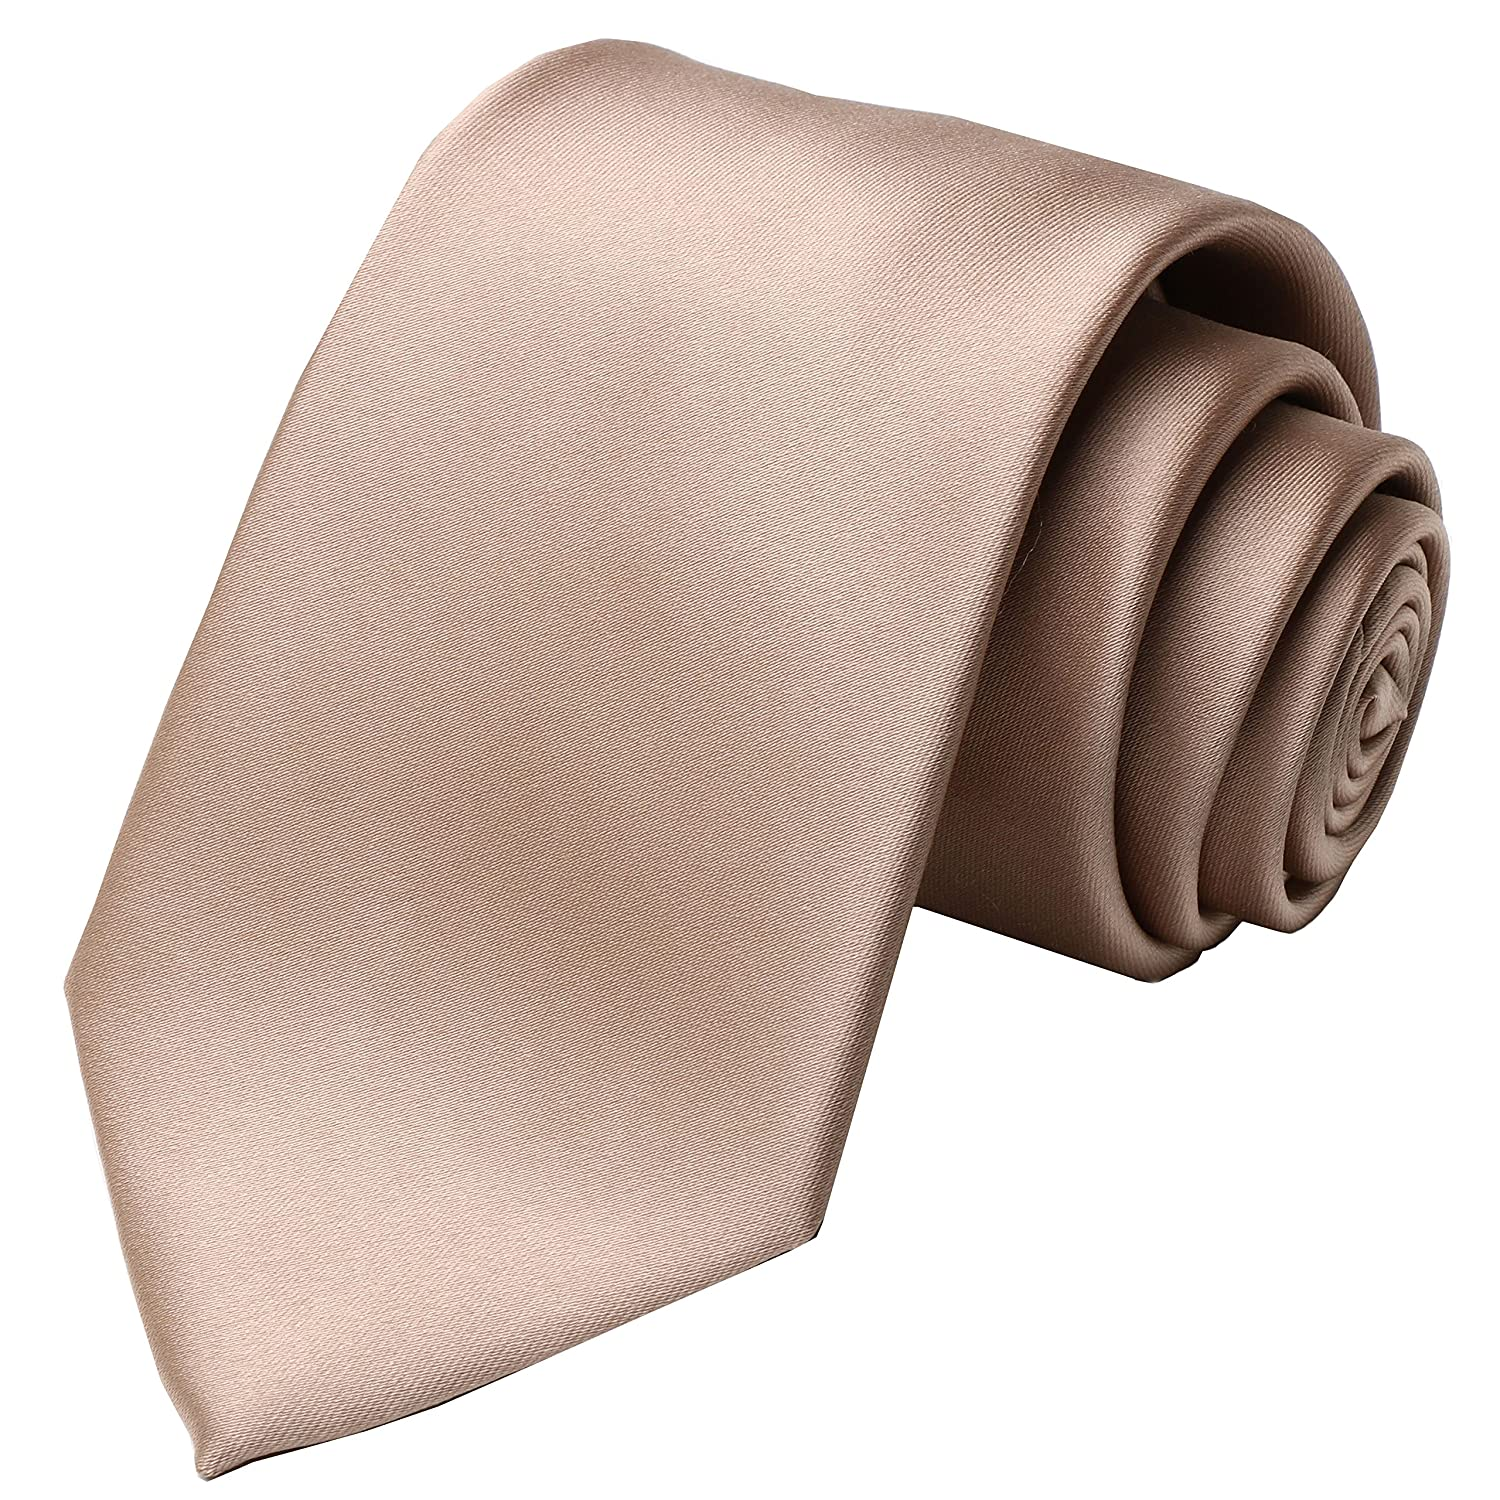 KissTies 4PCS Men's Tie Solid Color Neckties Wedding Ties + 1 Magnetic Box KT1012131583